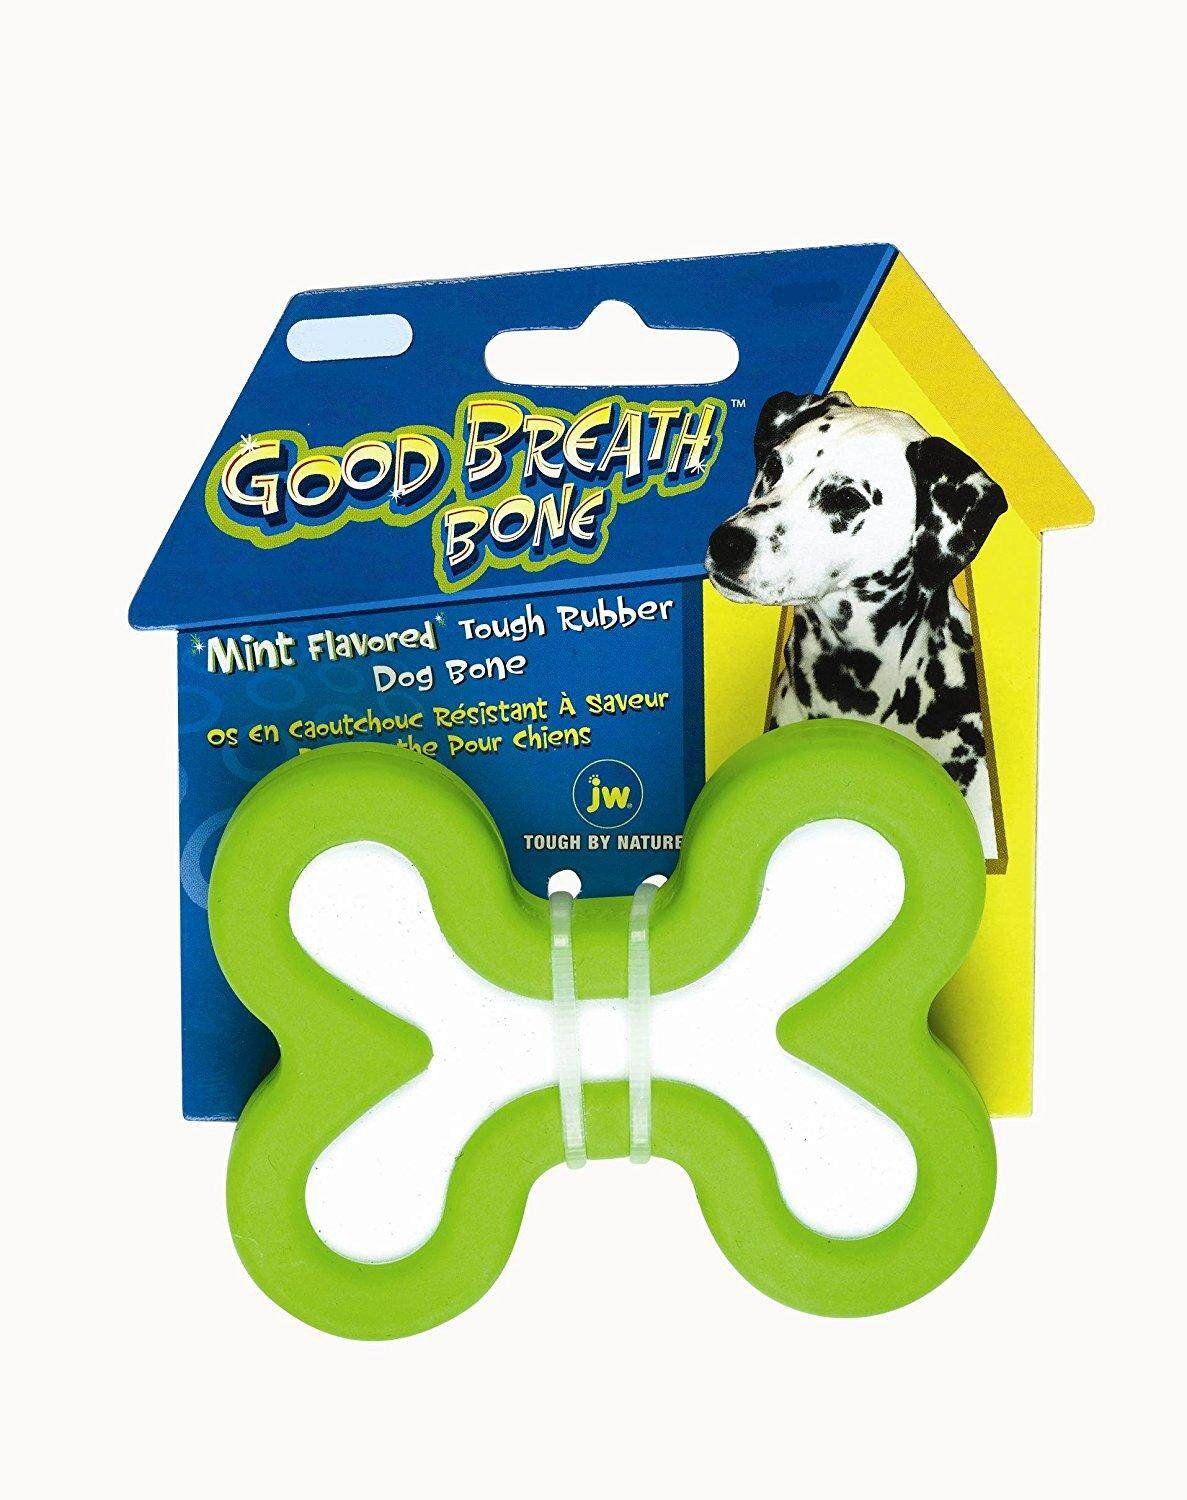 [JW PET TOYS] Good Breath Bone Durable Natural Rubber Dog Solid Rubber Toy - Small